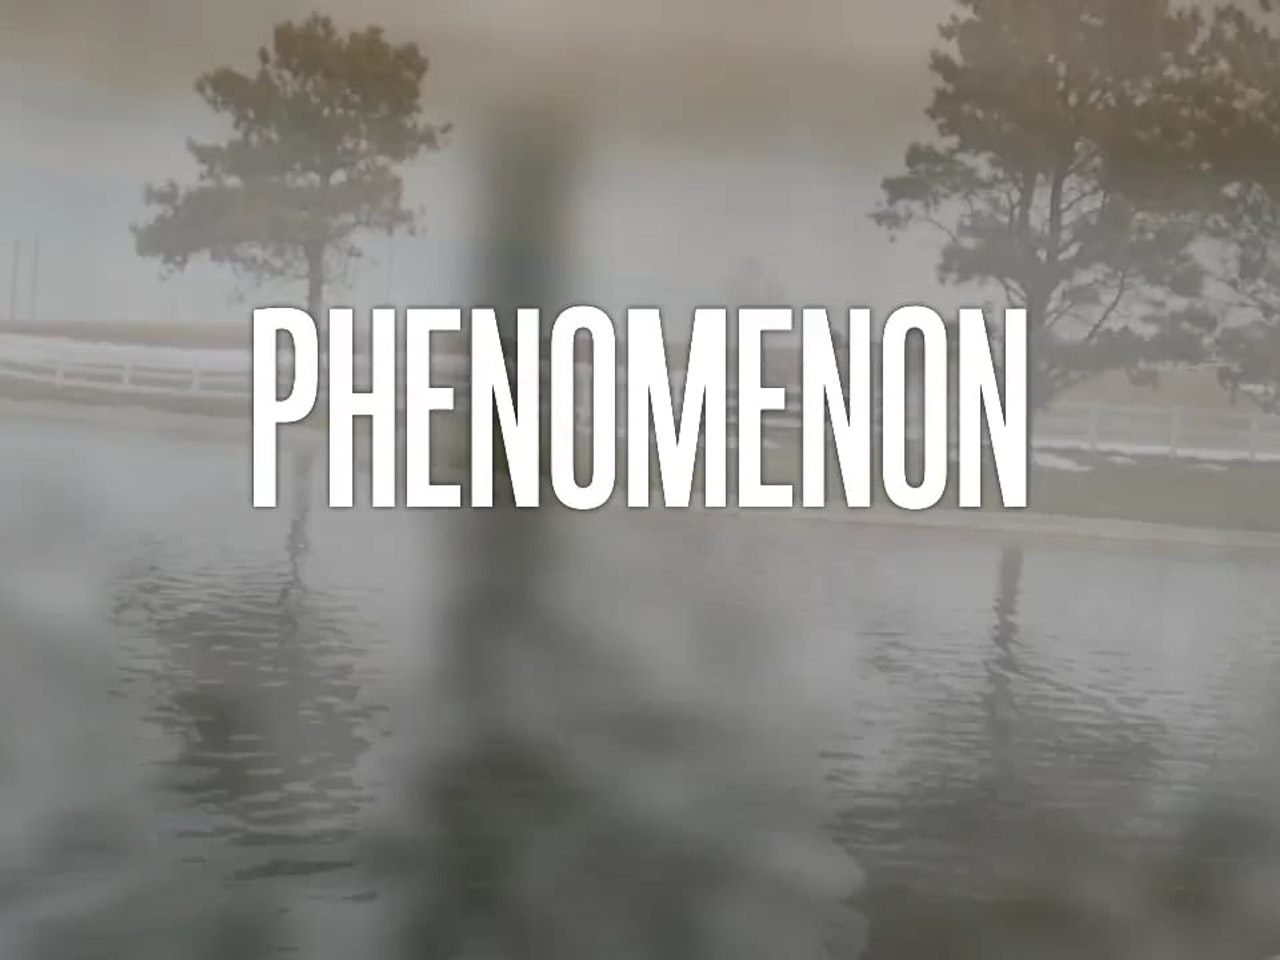 Phenomenon Main Title Animation